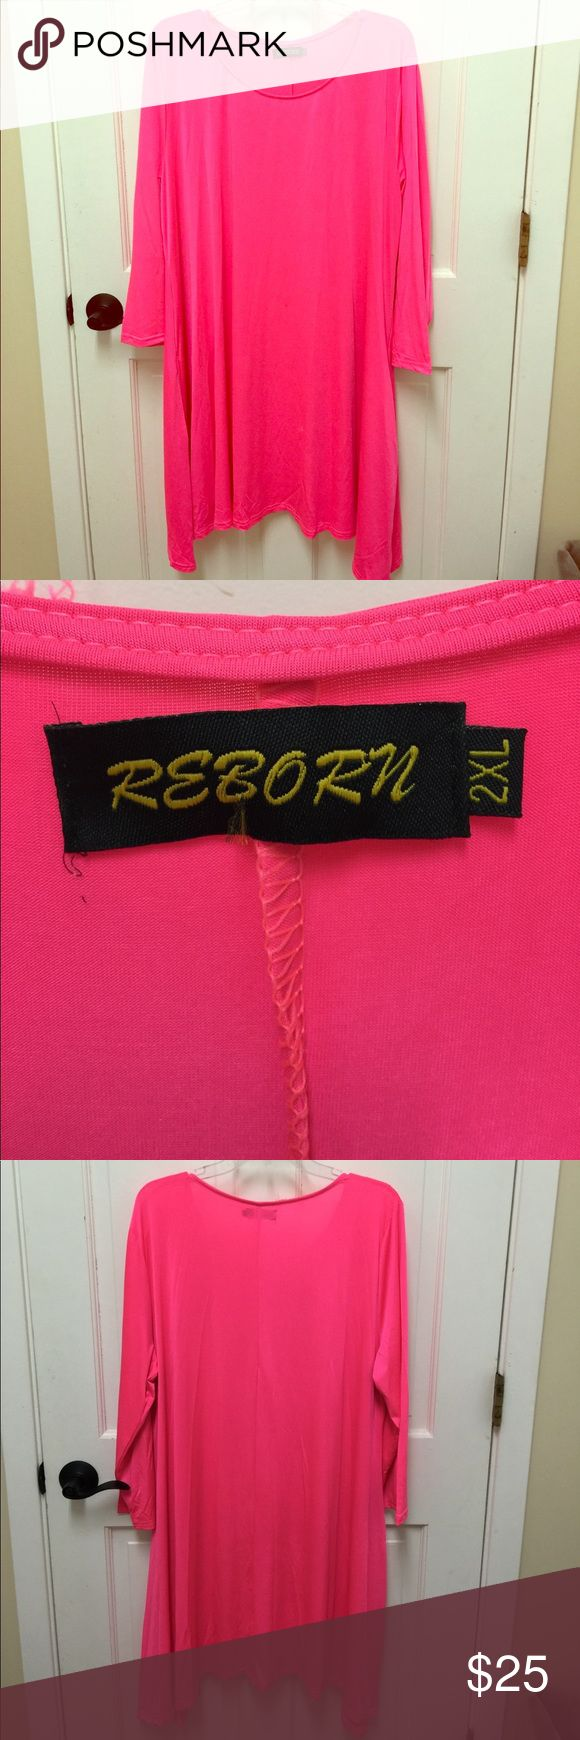 Tunic Top Swimsuit Material NEON PINK Neon Pink Tunic Top/Swim Top 3/4 sleeves shark bite hemline. 2 pockets at the sides NWOT Size 2xl reborn Tops Tunics